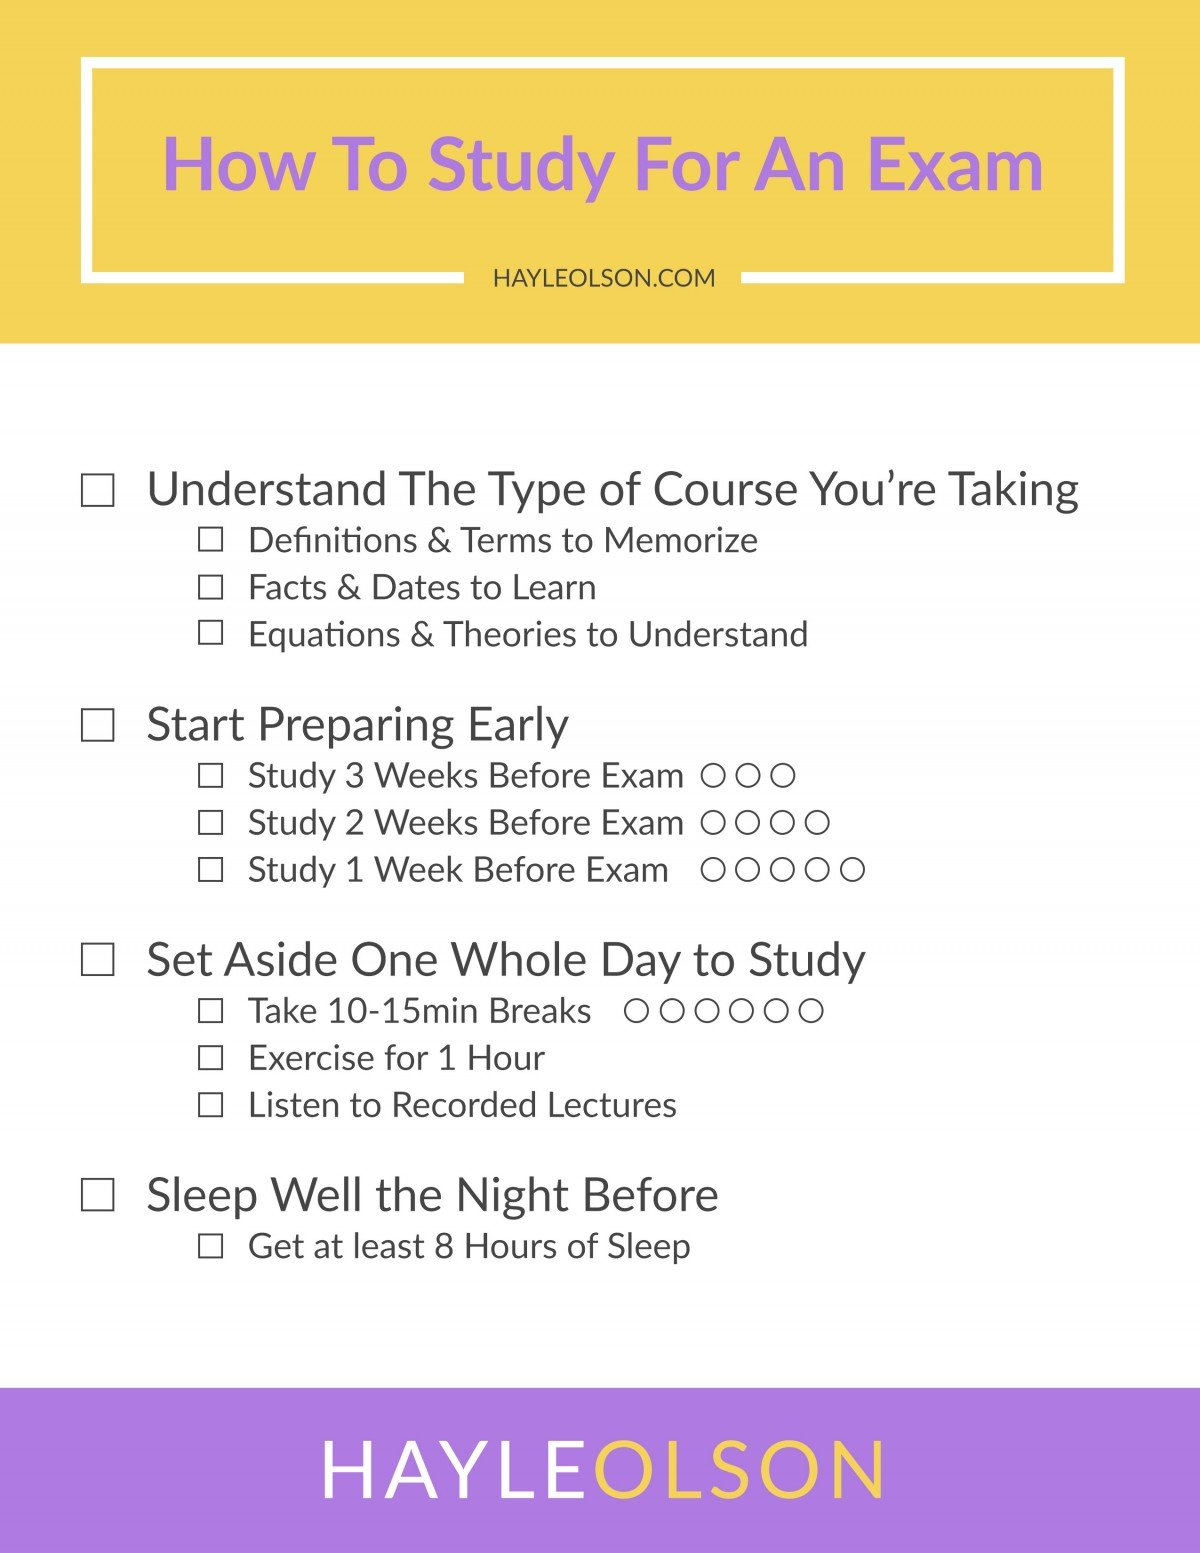 How to Study For An Exam | College Tips | Hayle Olson | www.haylesantella.com